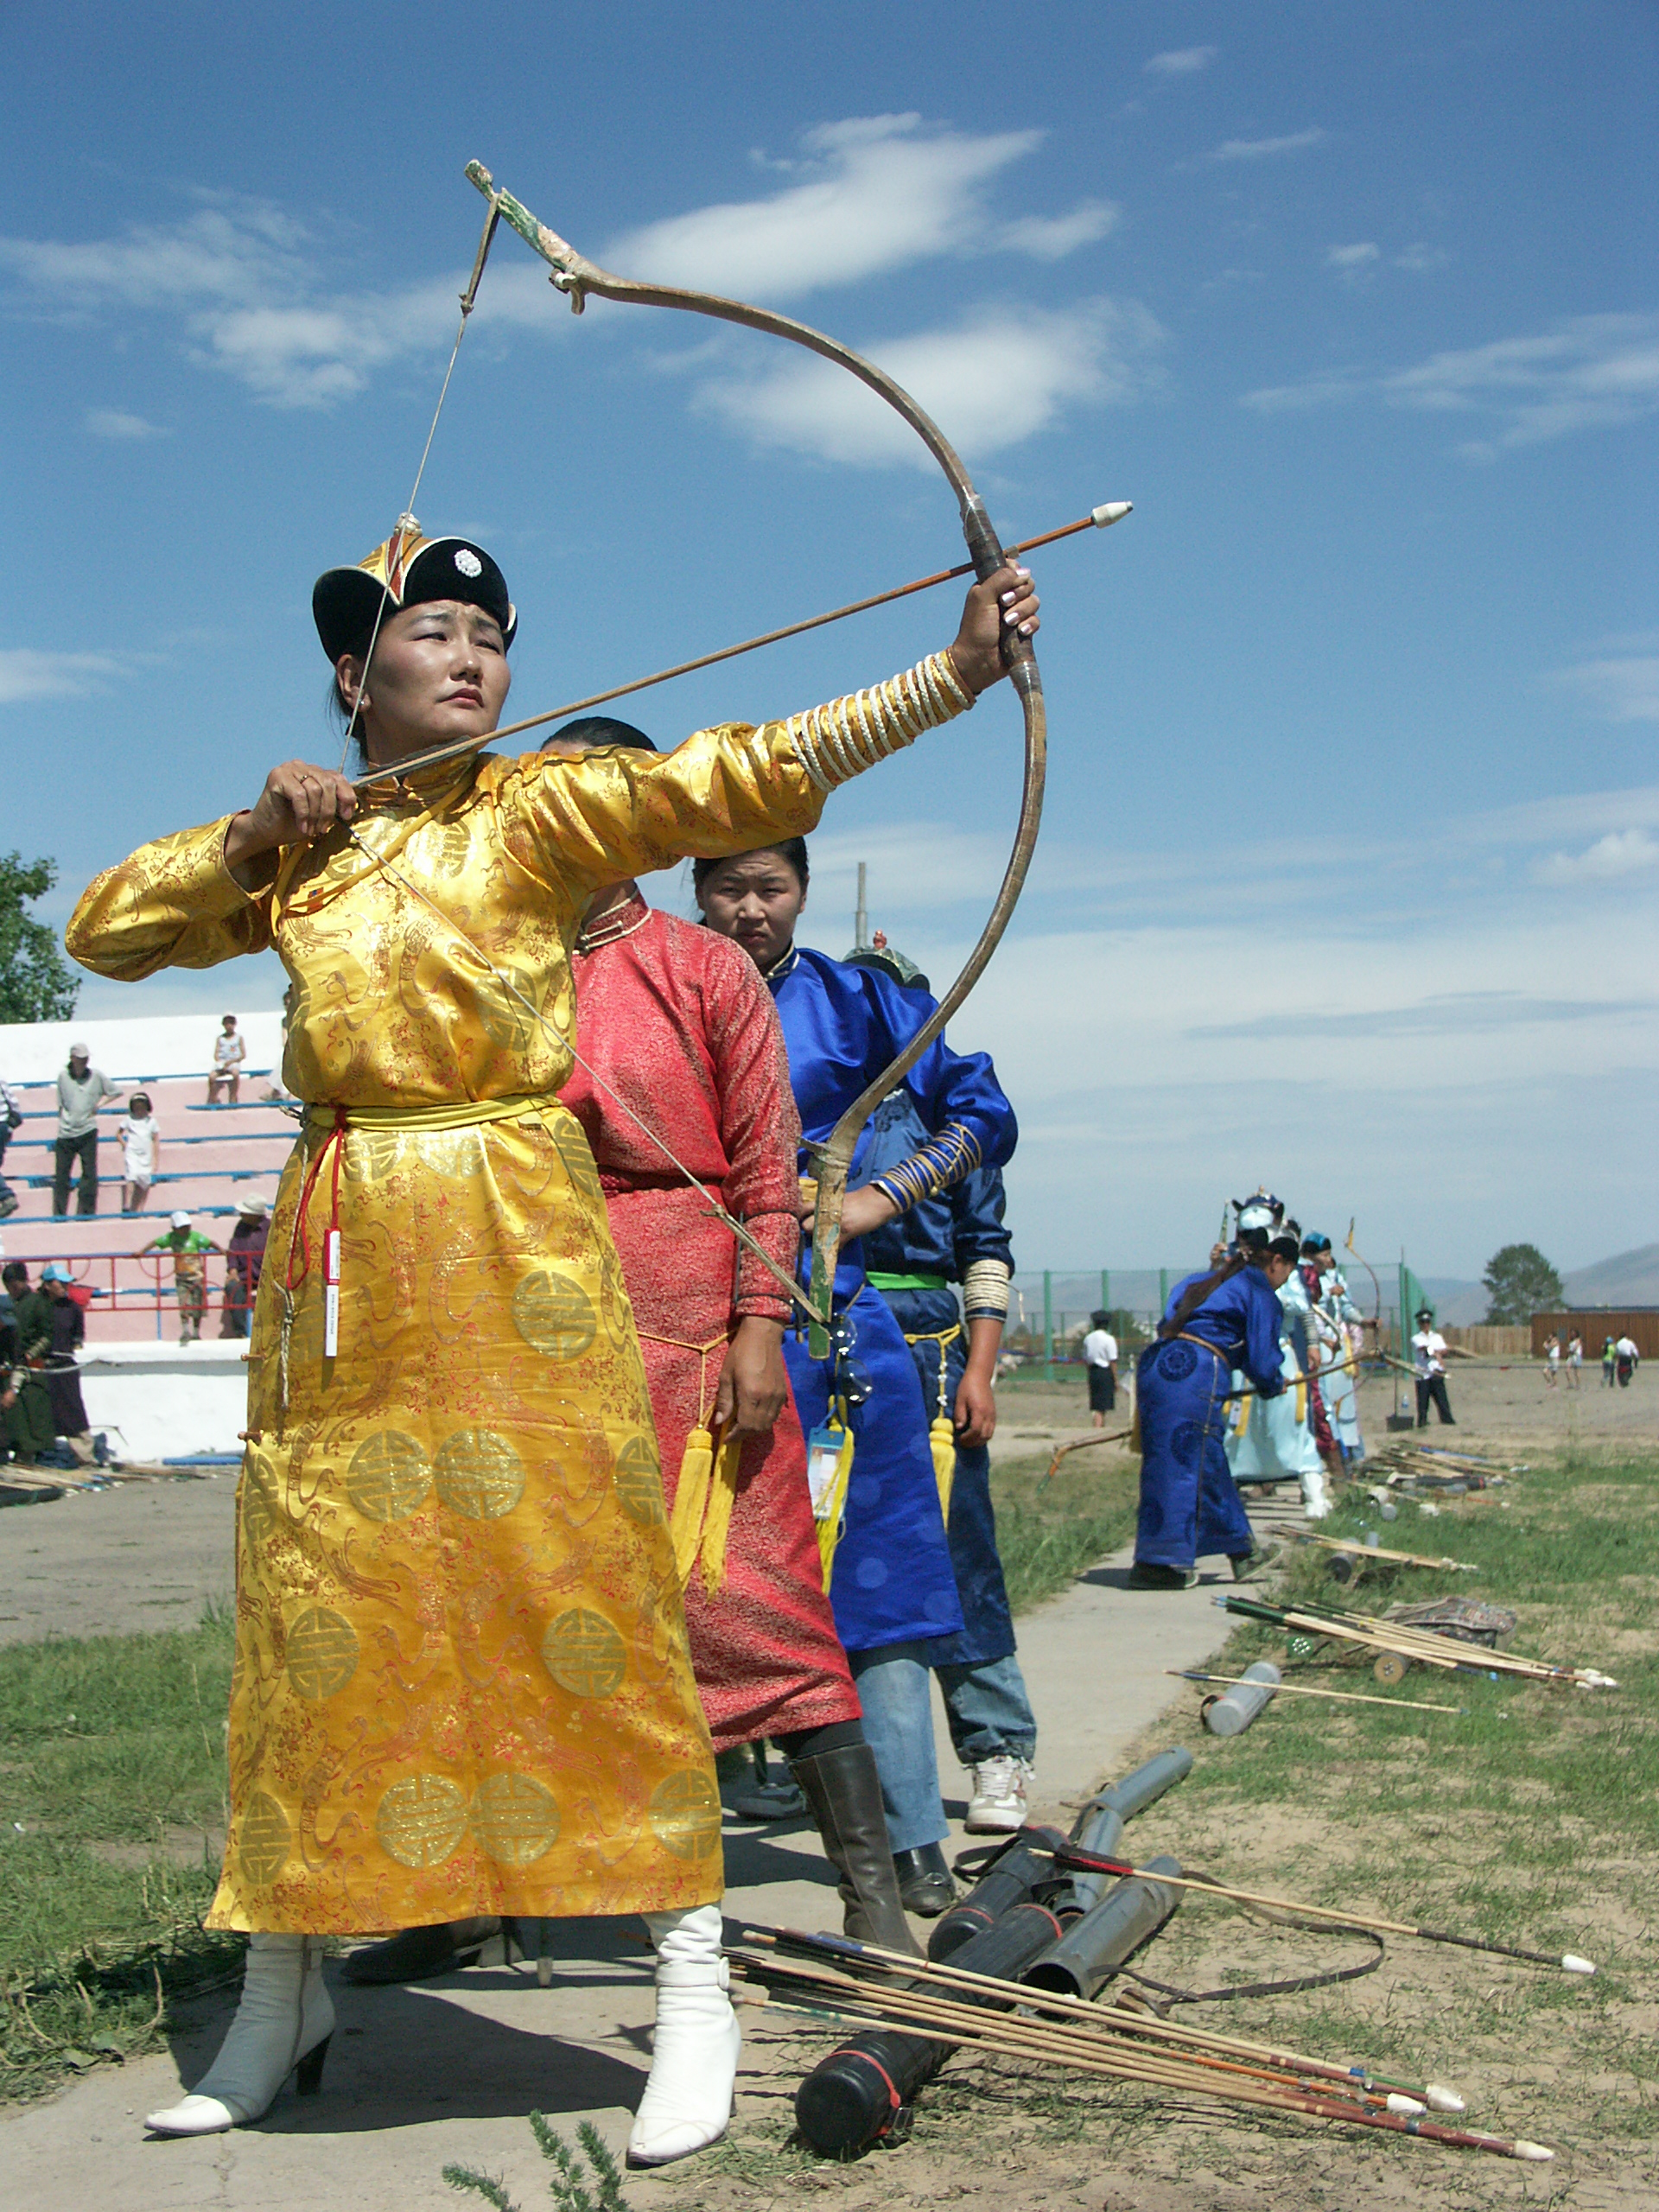 Women's archery contest at the Nadaam Festival (Photo: Zoharby 2005)